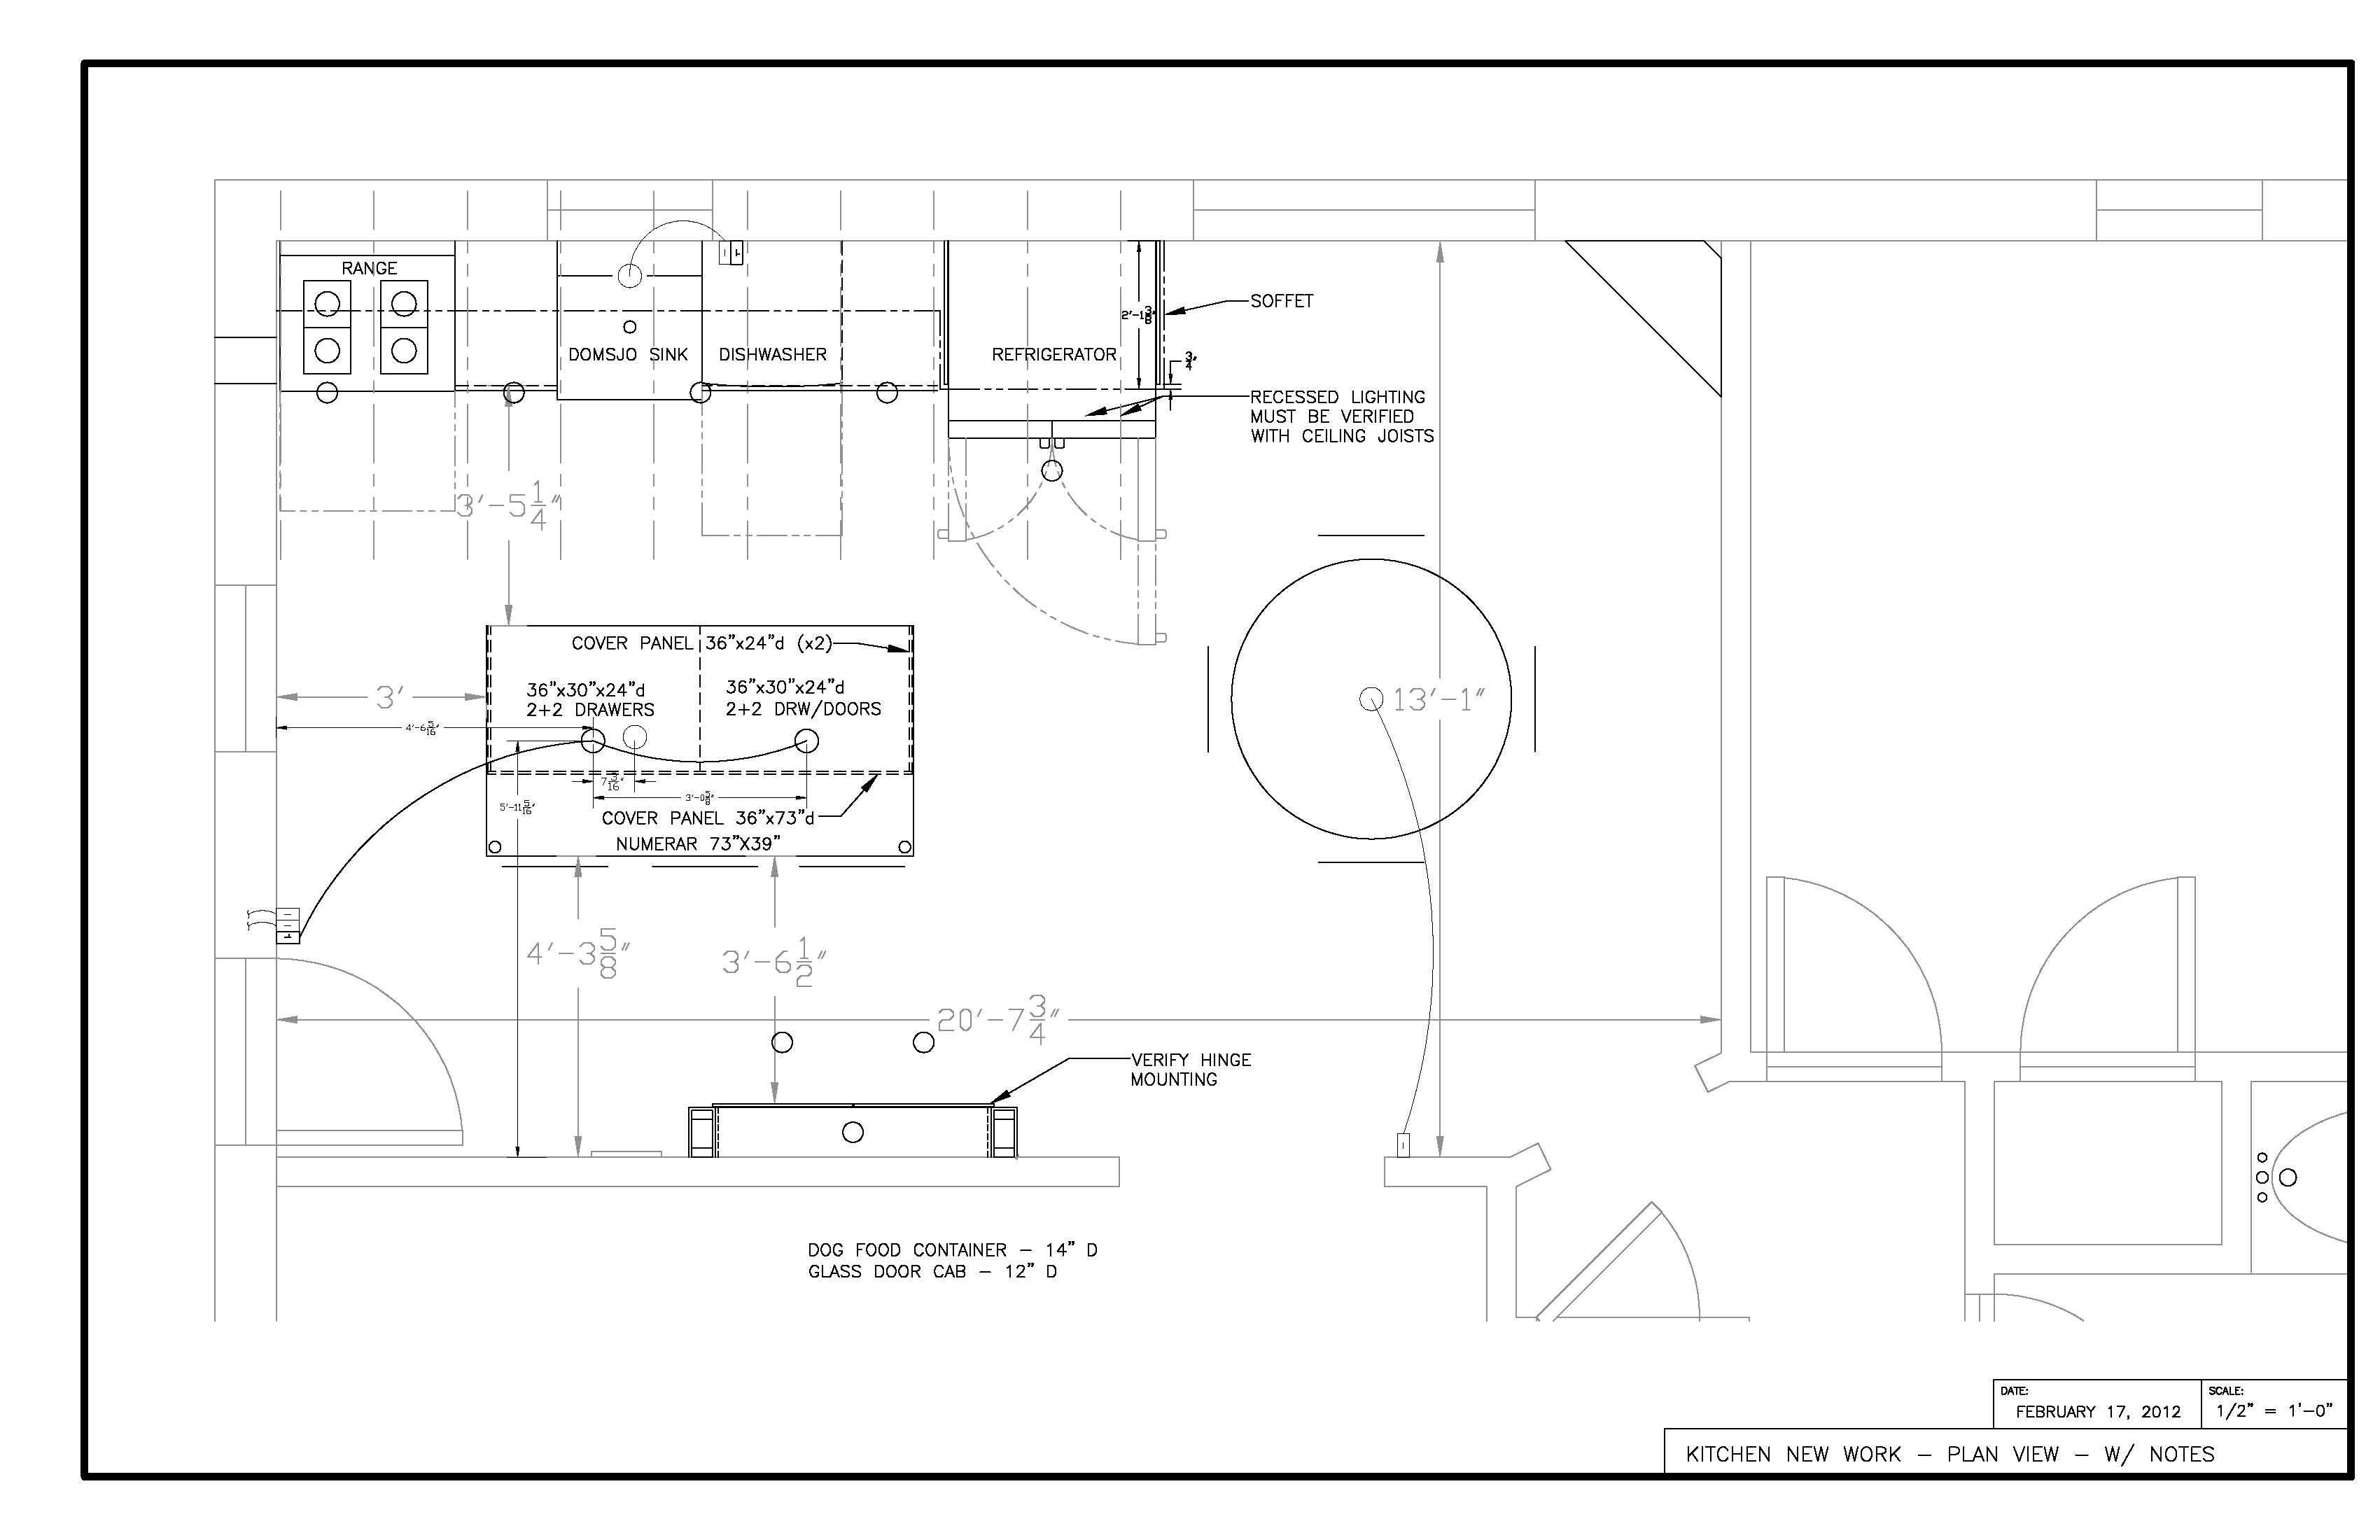 medium resolution of kitchen plan view current working drawing w electrical